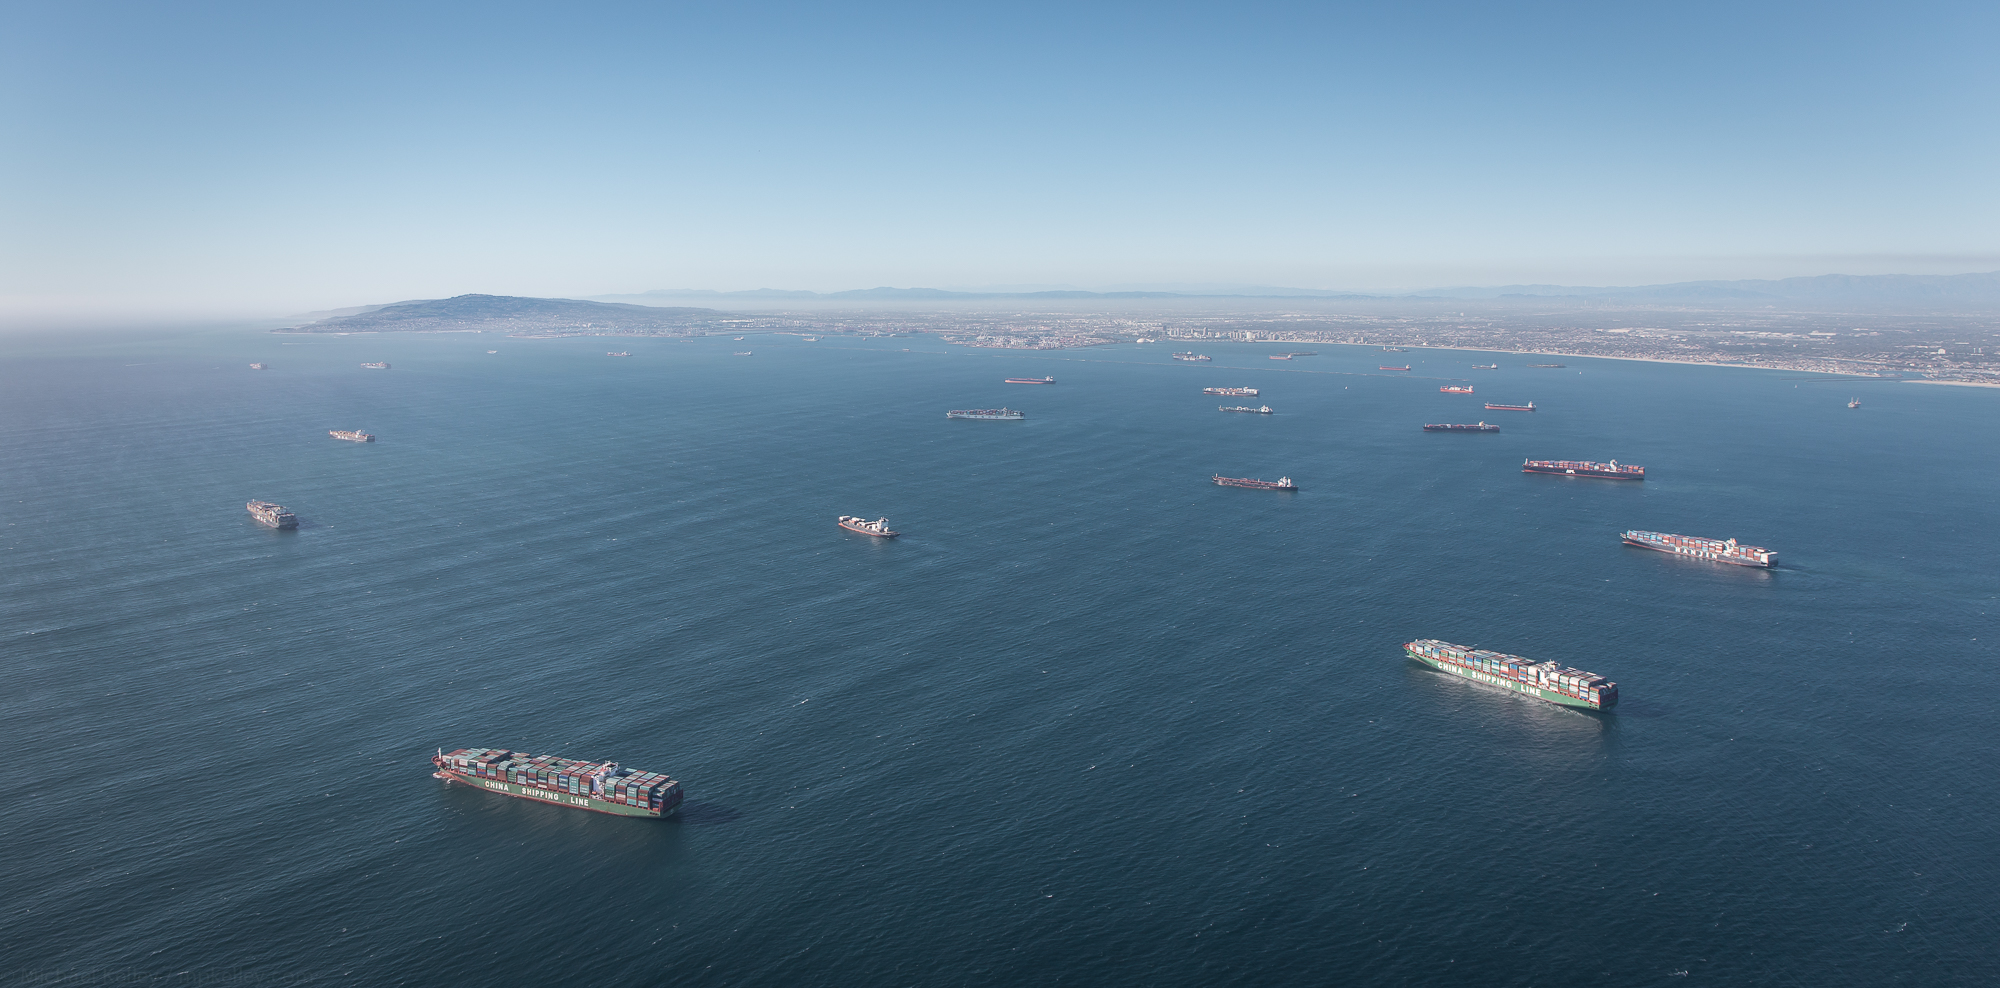 From this angle, the scale and size of the city and ships becomes quickly apparent